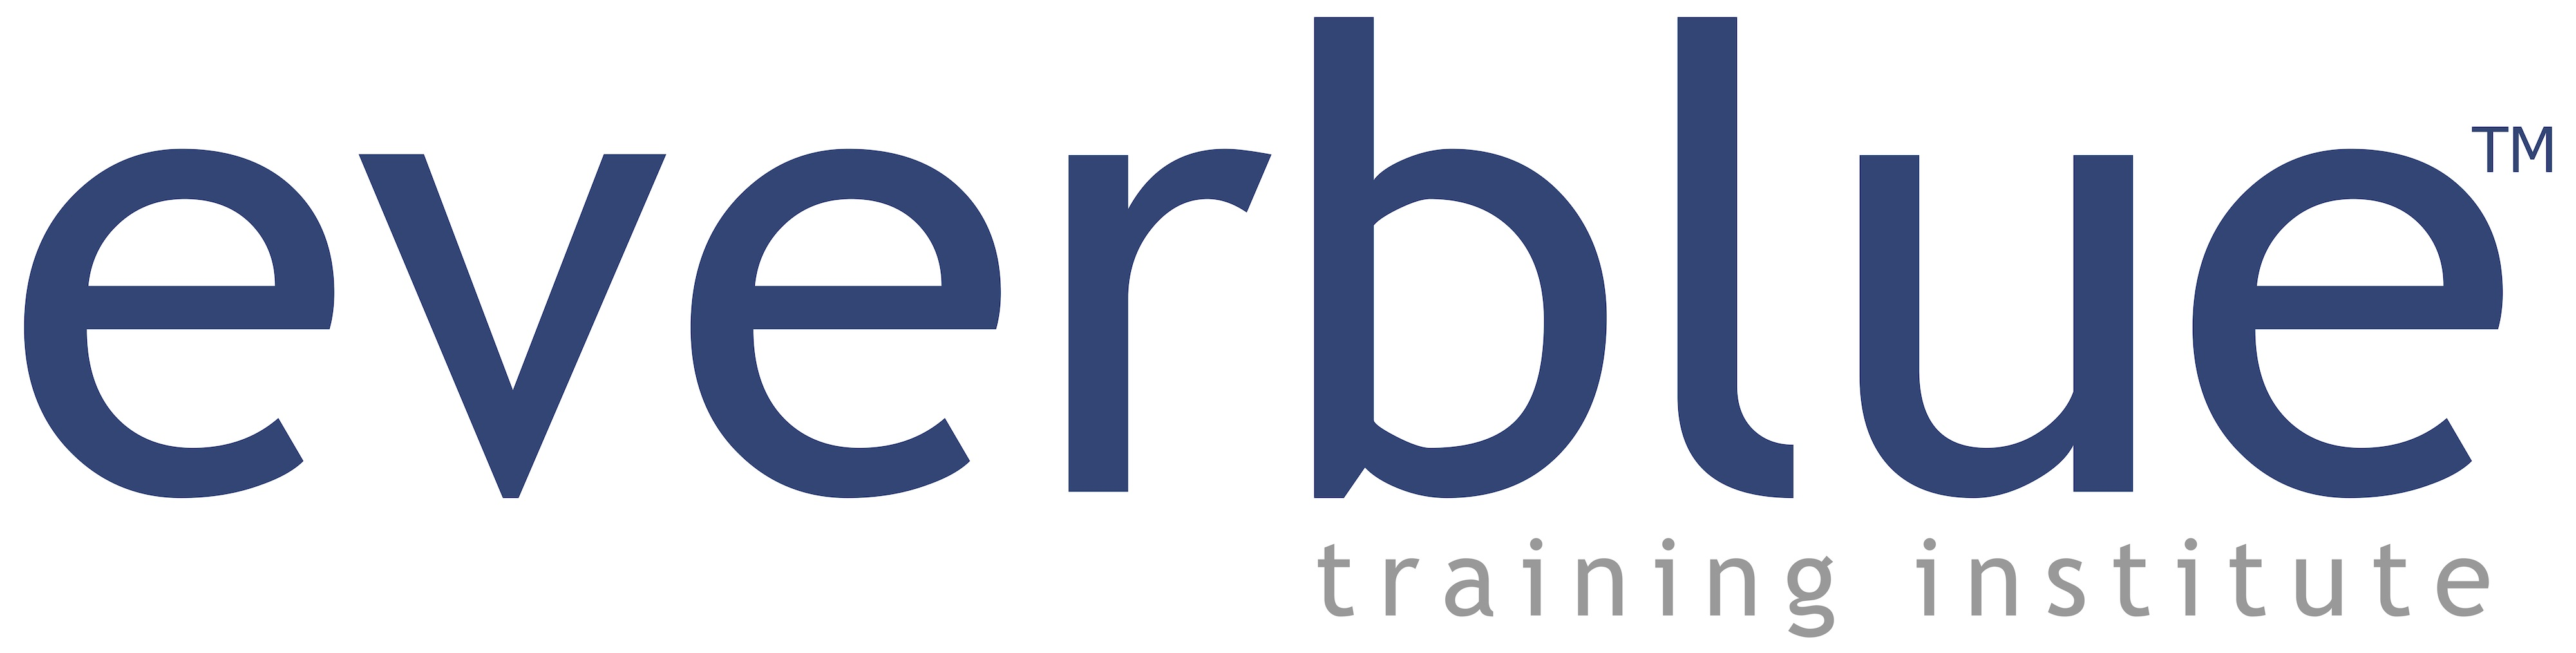 everblue-logo-small